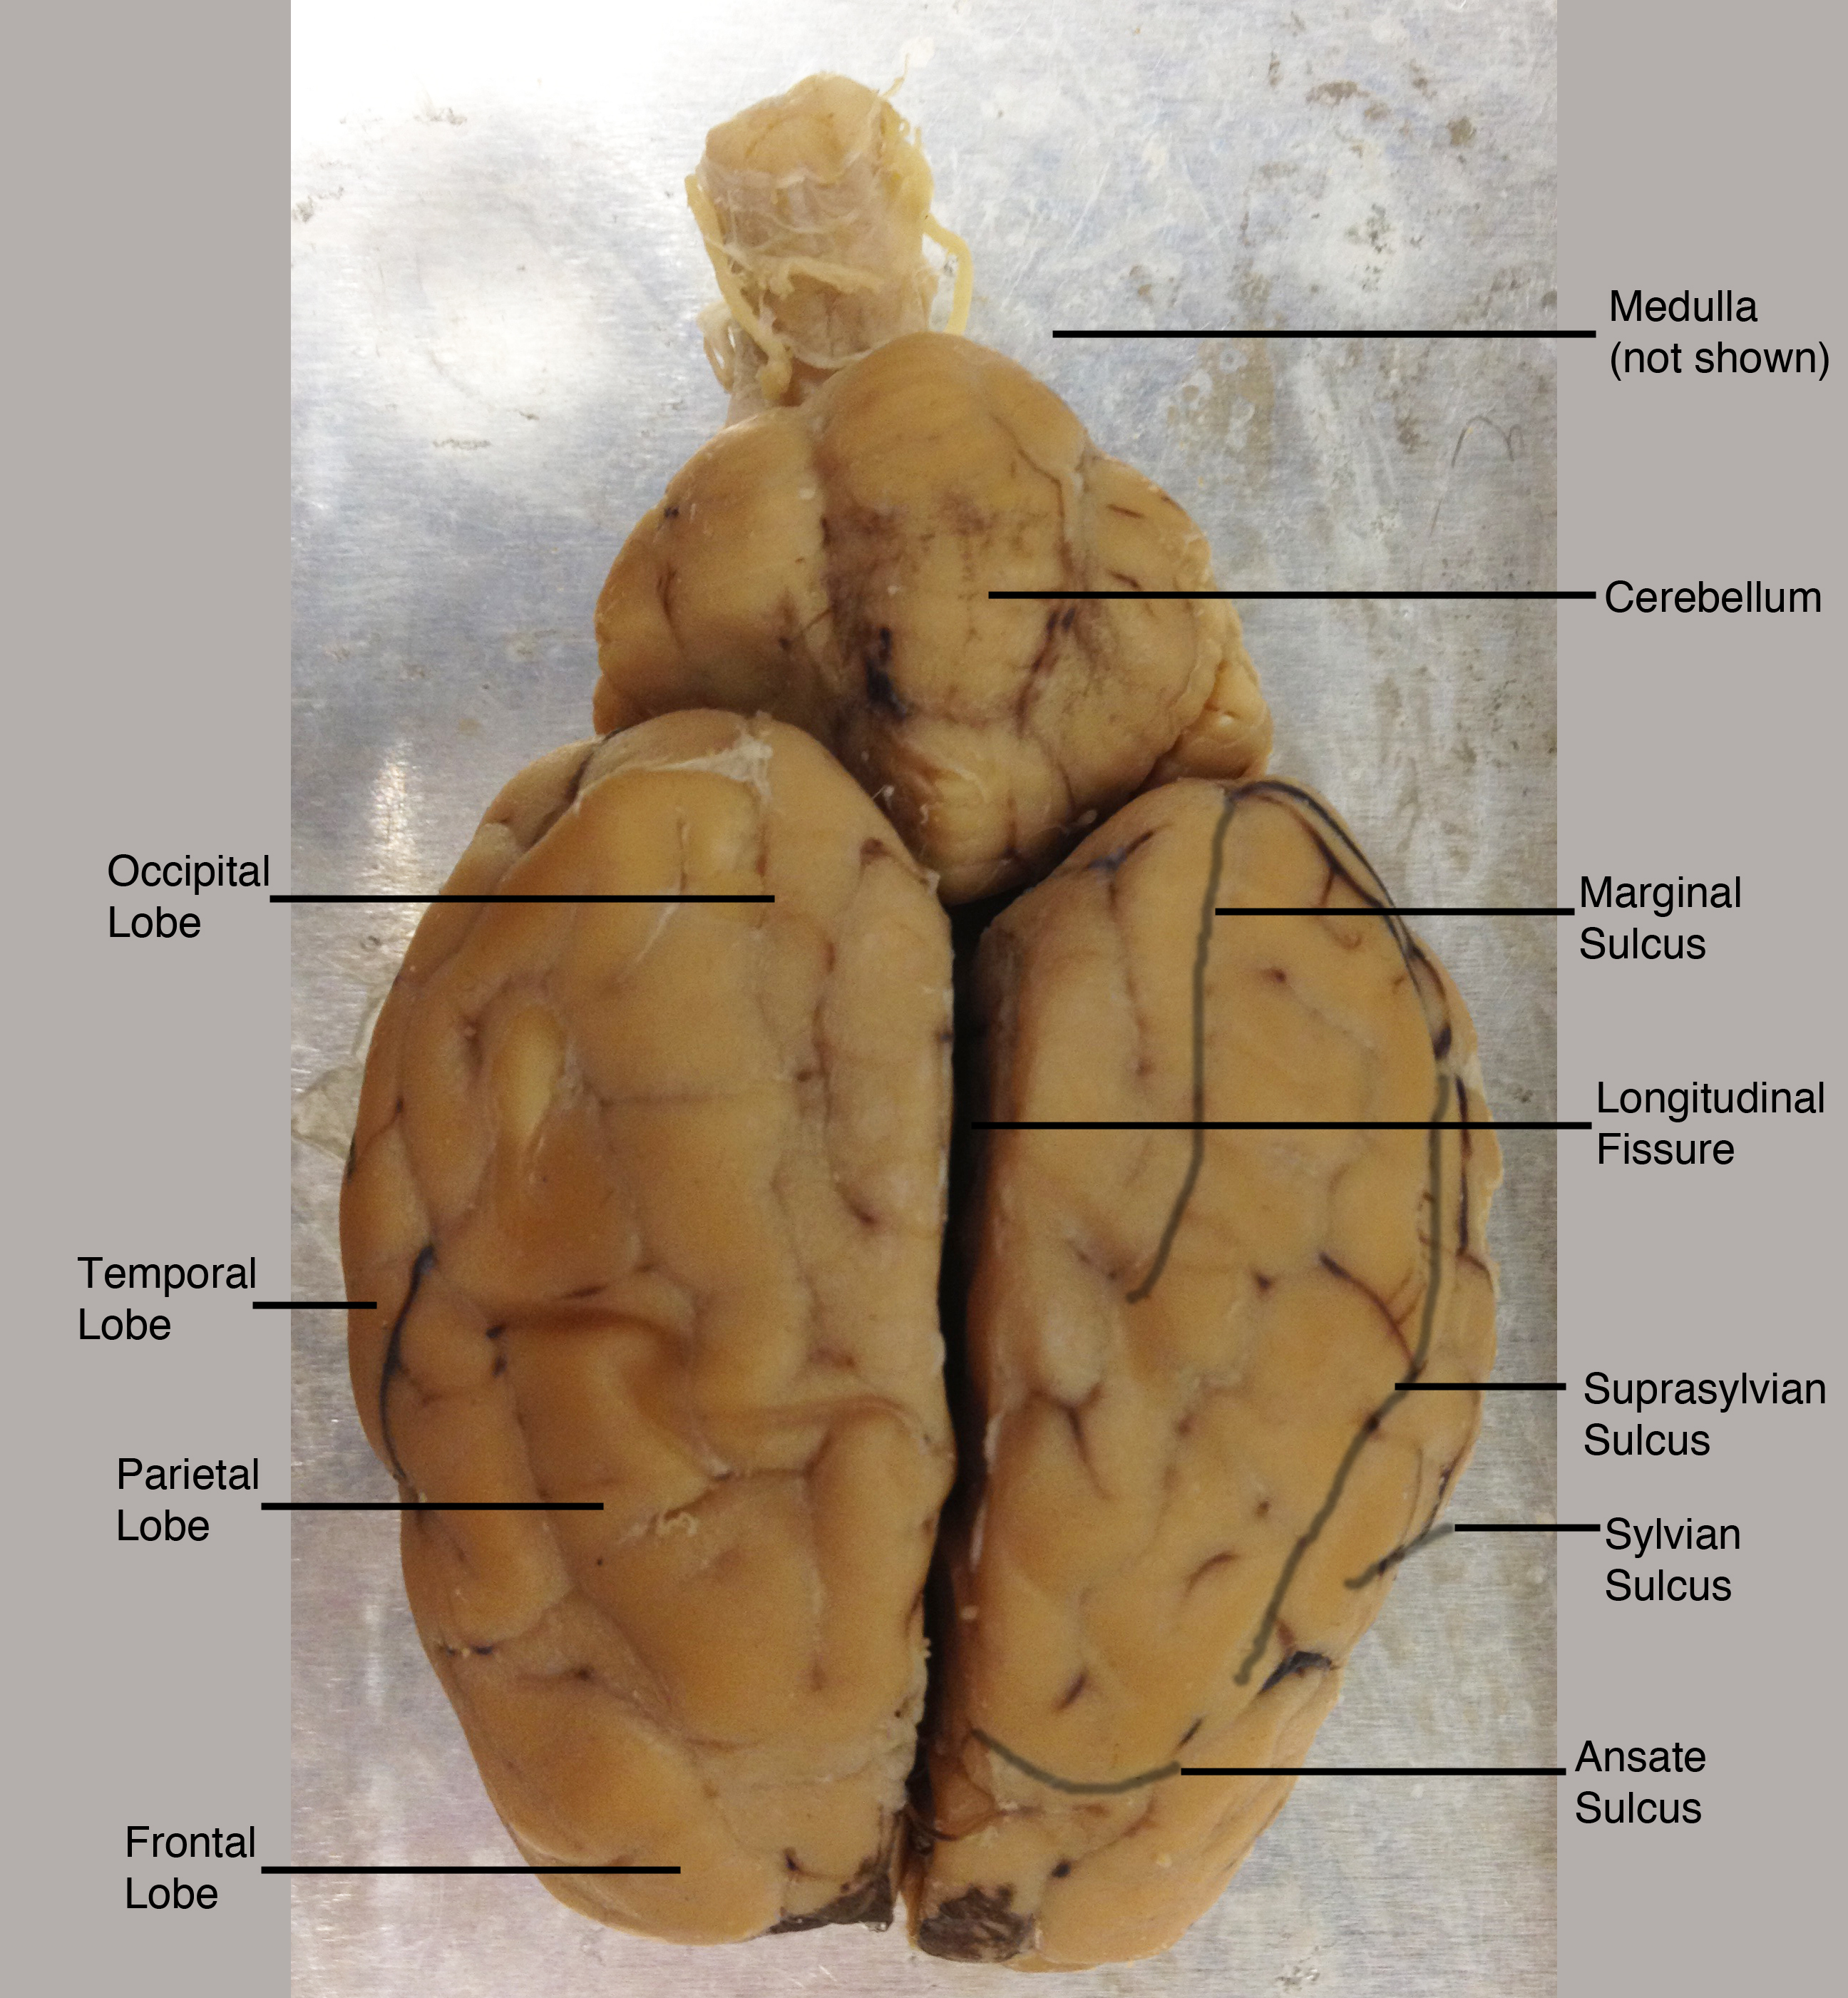 Sheep brain anatomy ventral - photo#8